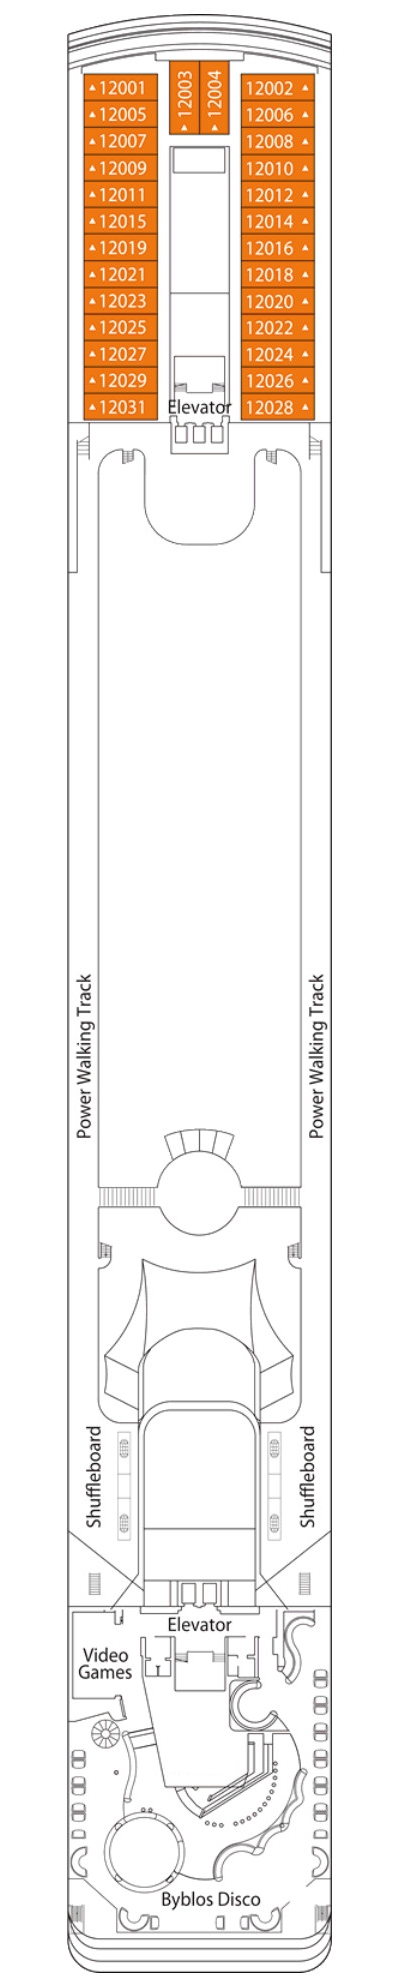 MSC Opera La Bohème Deck 12 layout